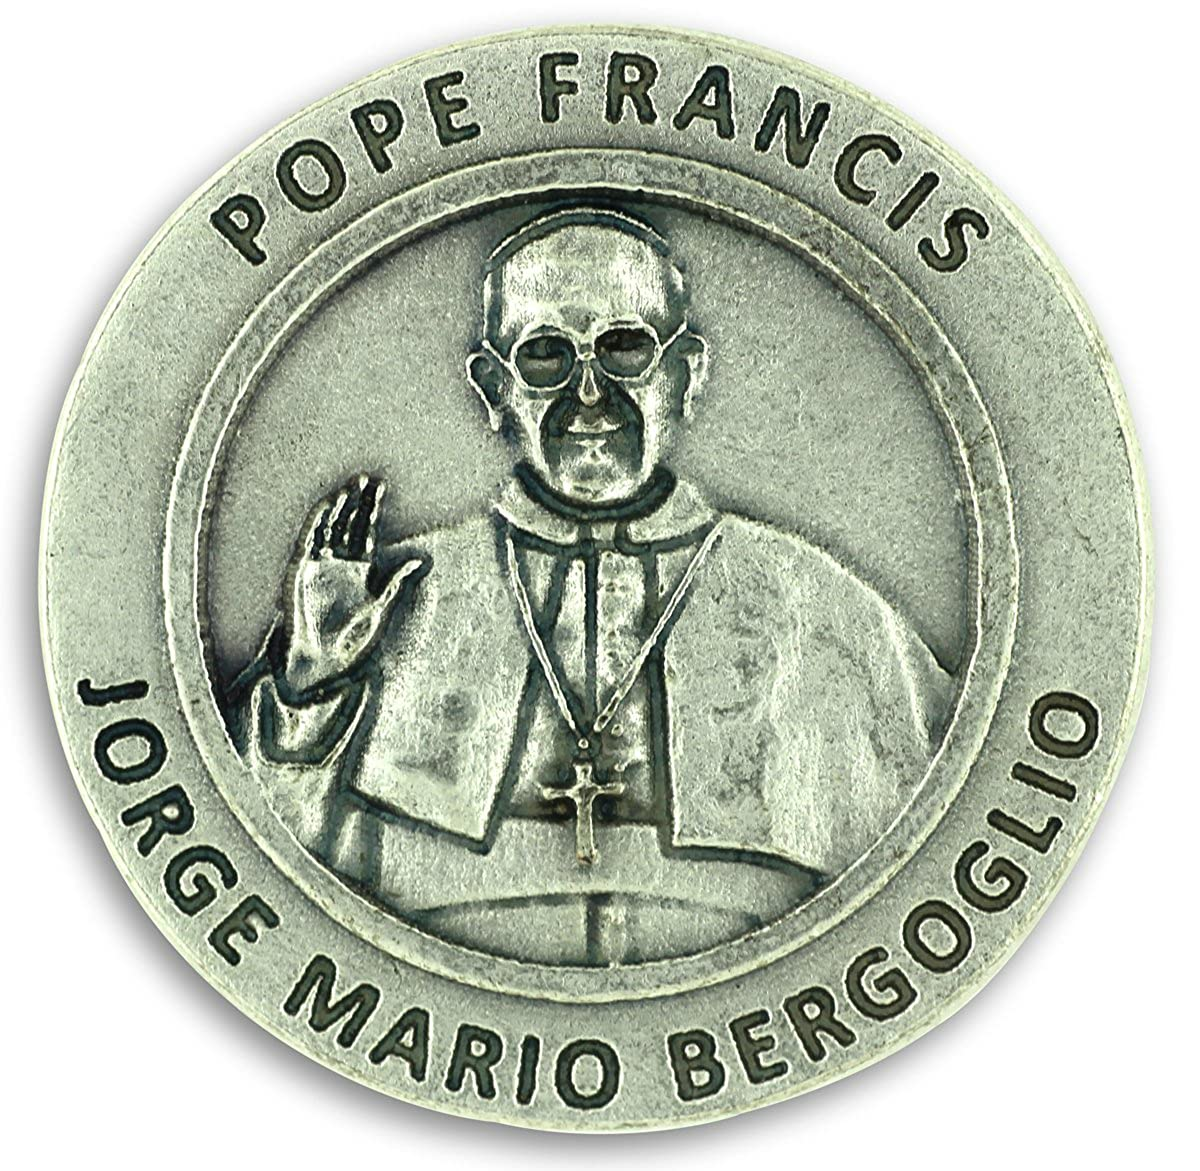 Pope Francis Pray for Us Pocket Token Coin Charm 1.2 Catholic PT1053